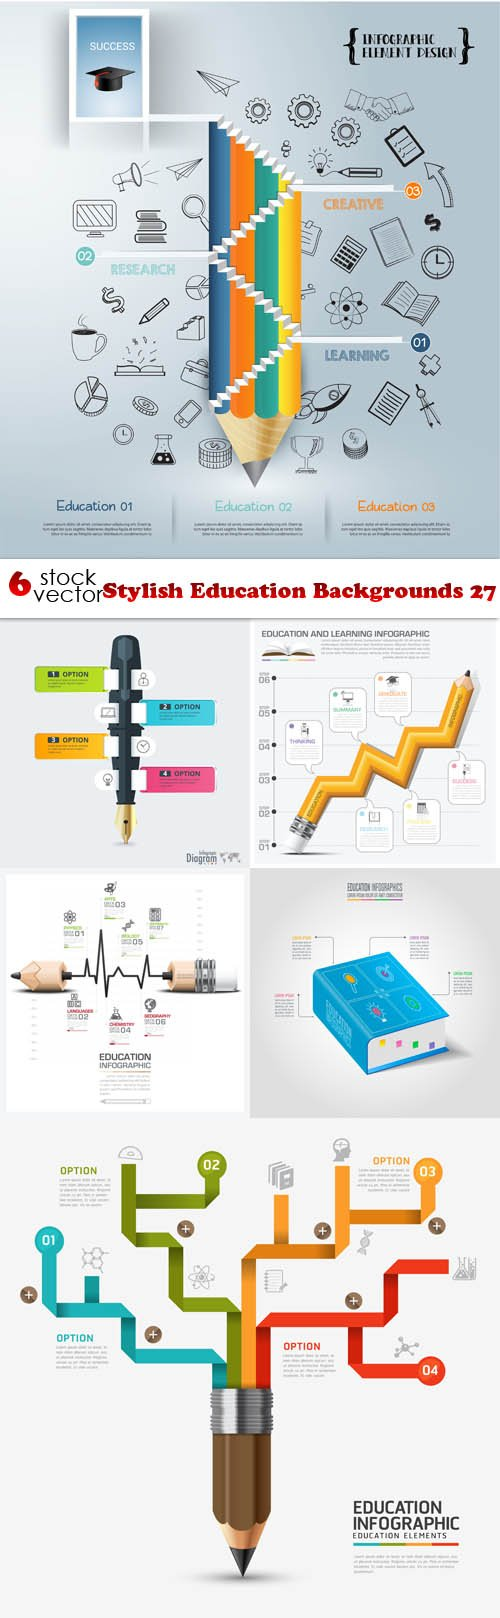 Vectors - Stylish Education Backgrounds 27